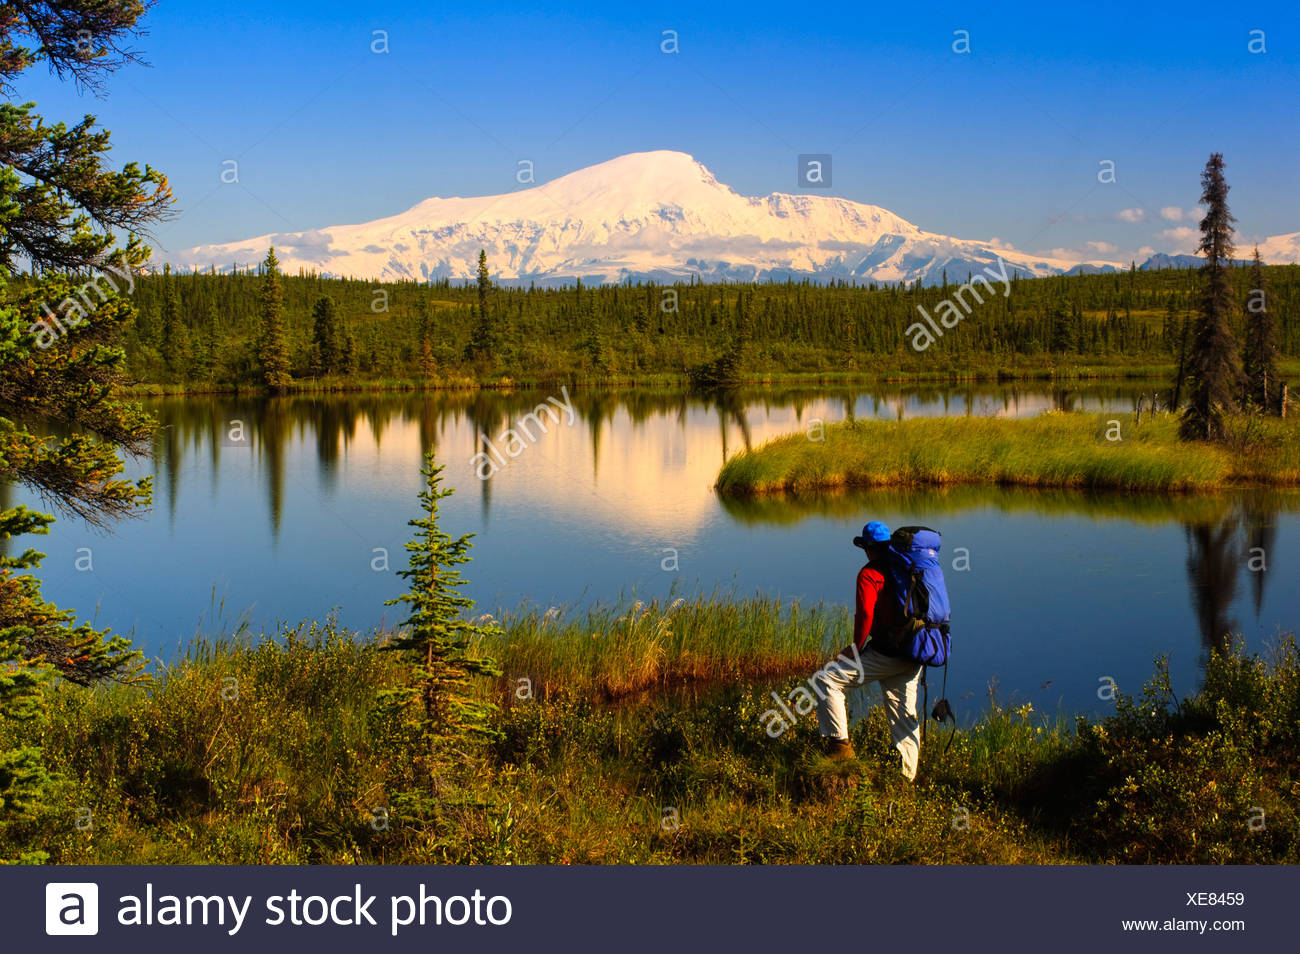 Male backpacker stops to enjoy the view of Mount Sanford, Wrangell Saint Elias National Park, Southcentral Alaska, Summer - Stock Image